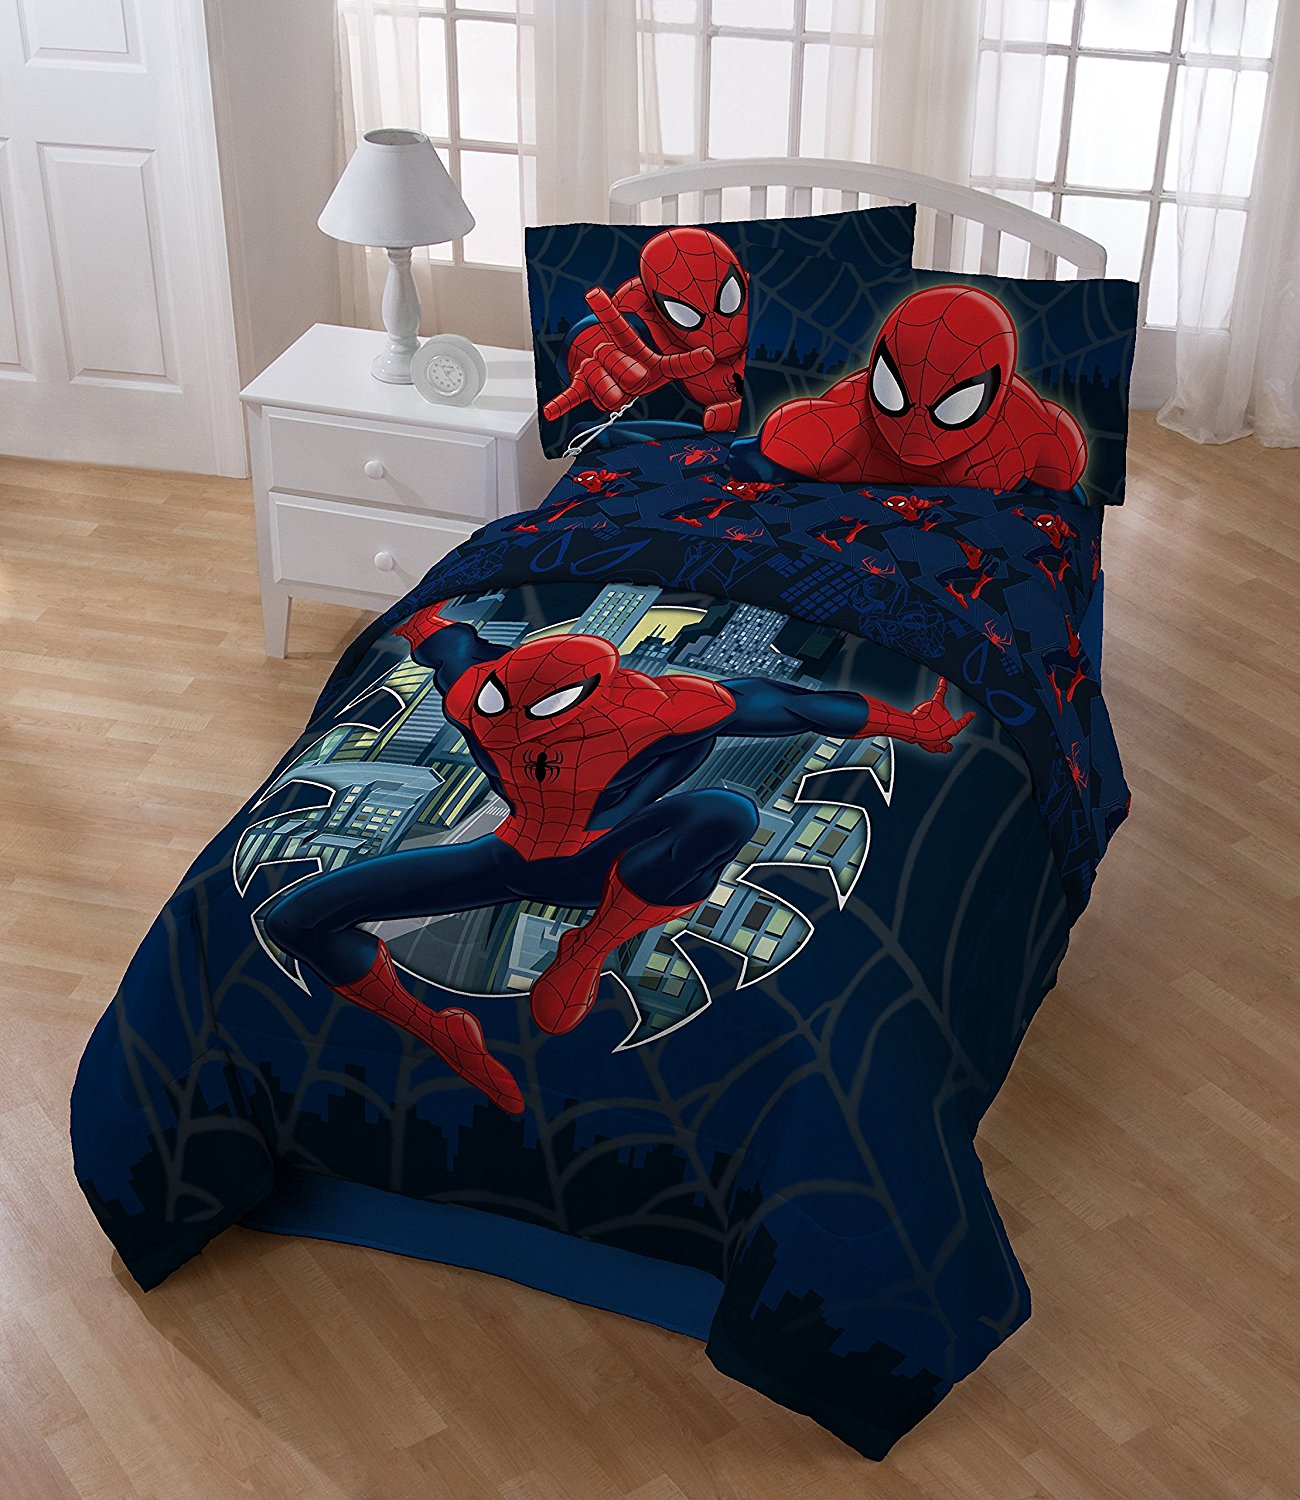 Buy 6 Piece Boys Spider Man The Movie Themed Comforter Full Set Marvel Super Hero Spiderman Comic Costume Character Bedding All Over Geometric Superhero Characters Spiders Web Pattern Navy Blue Red In